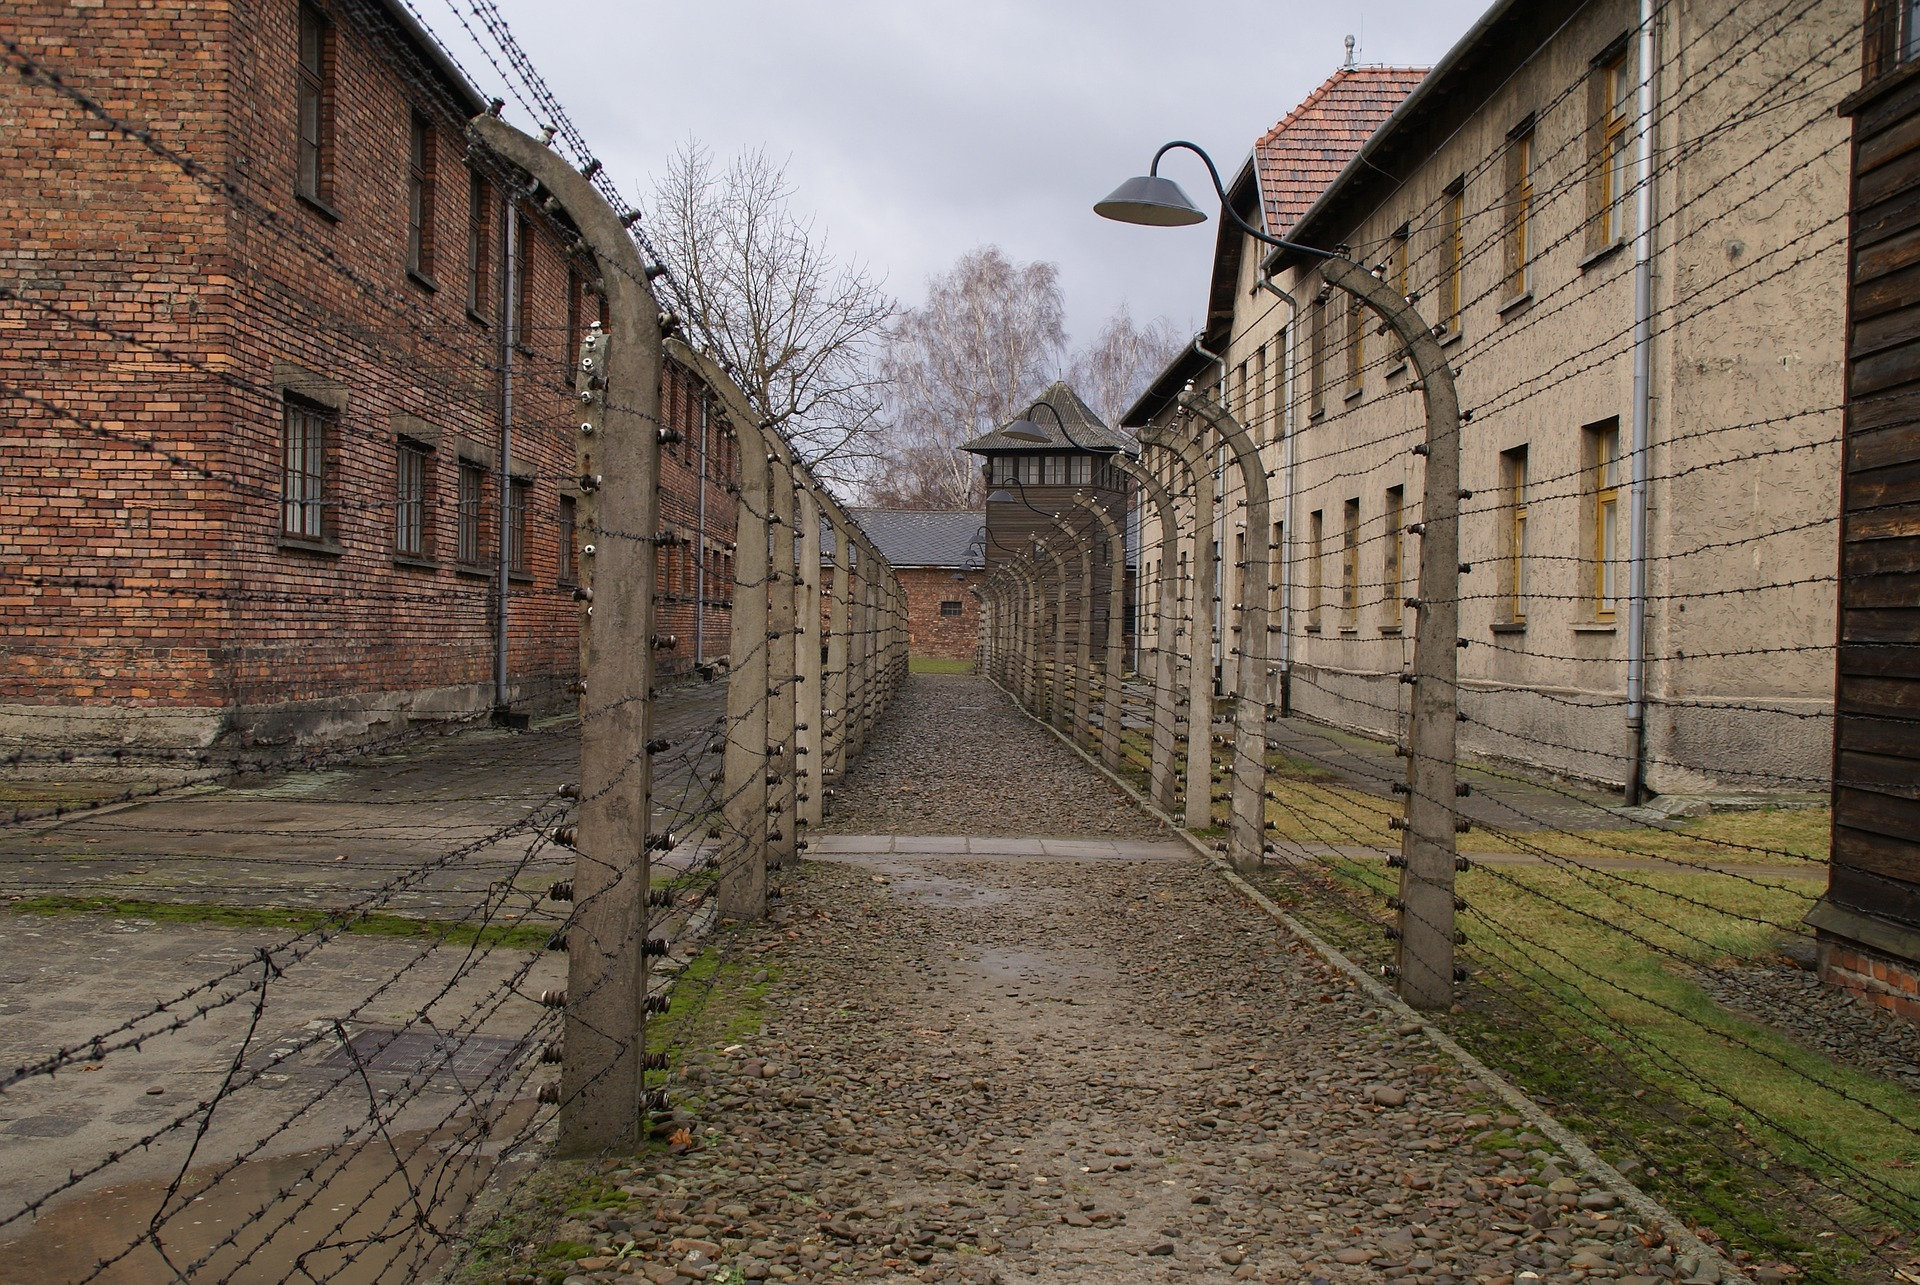 The programme will be based on the successful Lessons from Auschwitz initiative